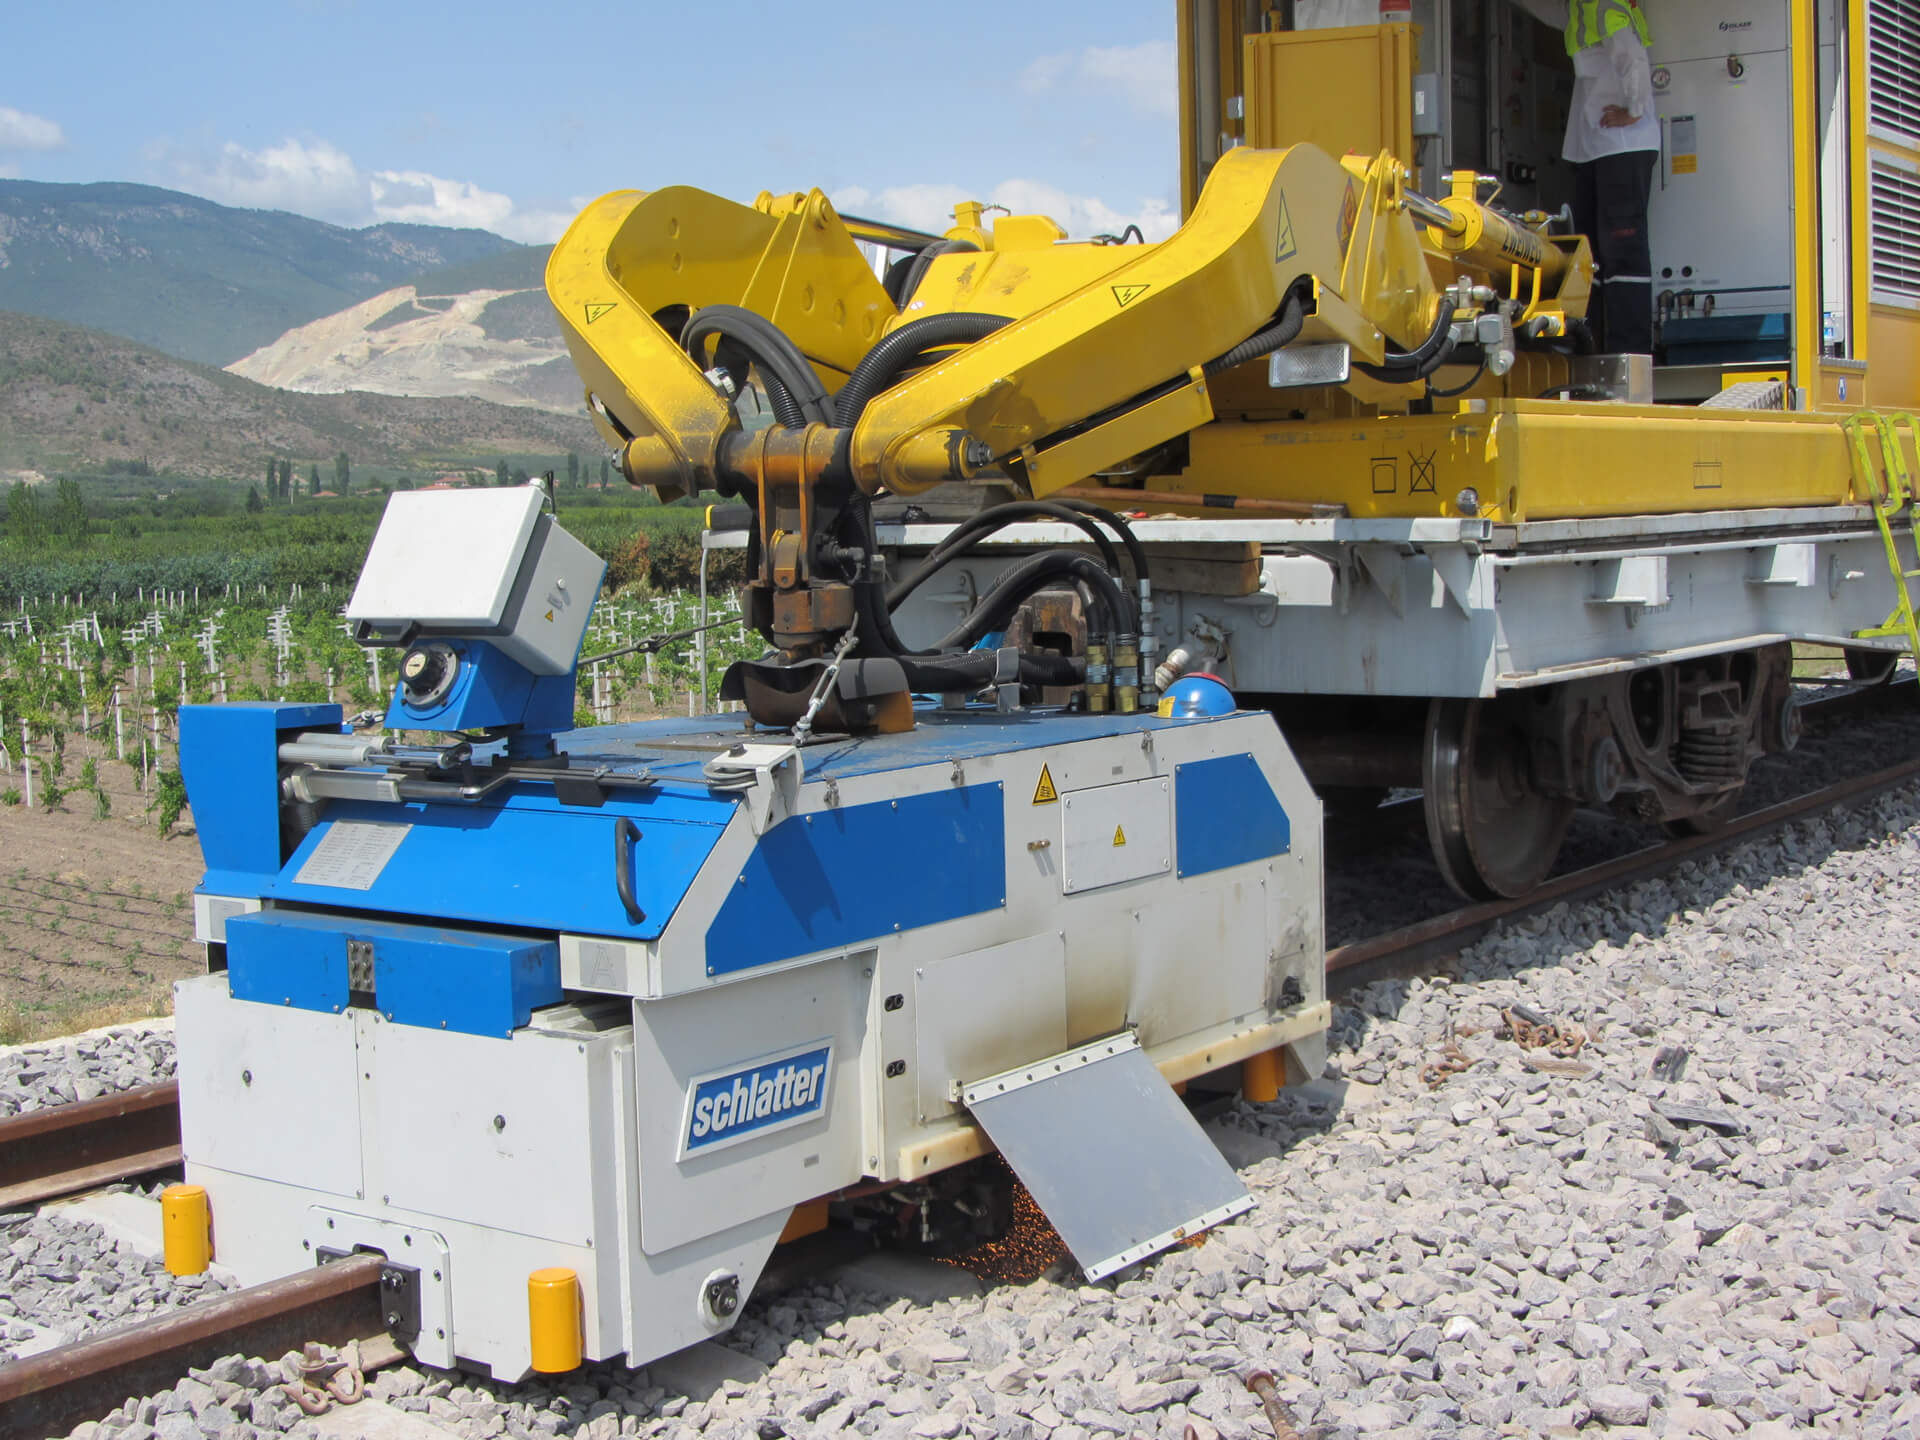 Mobile Rail Welding Machine AMS60 for high-quality alignment